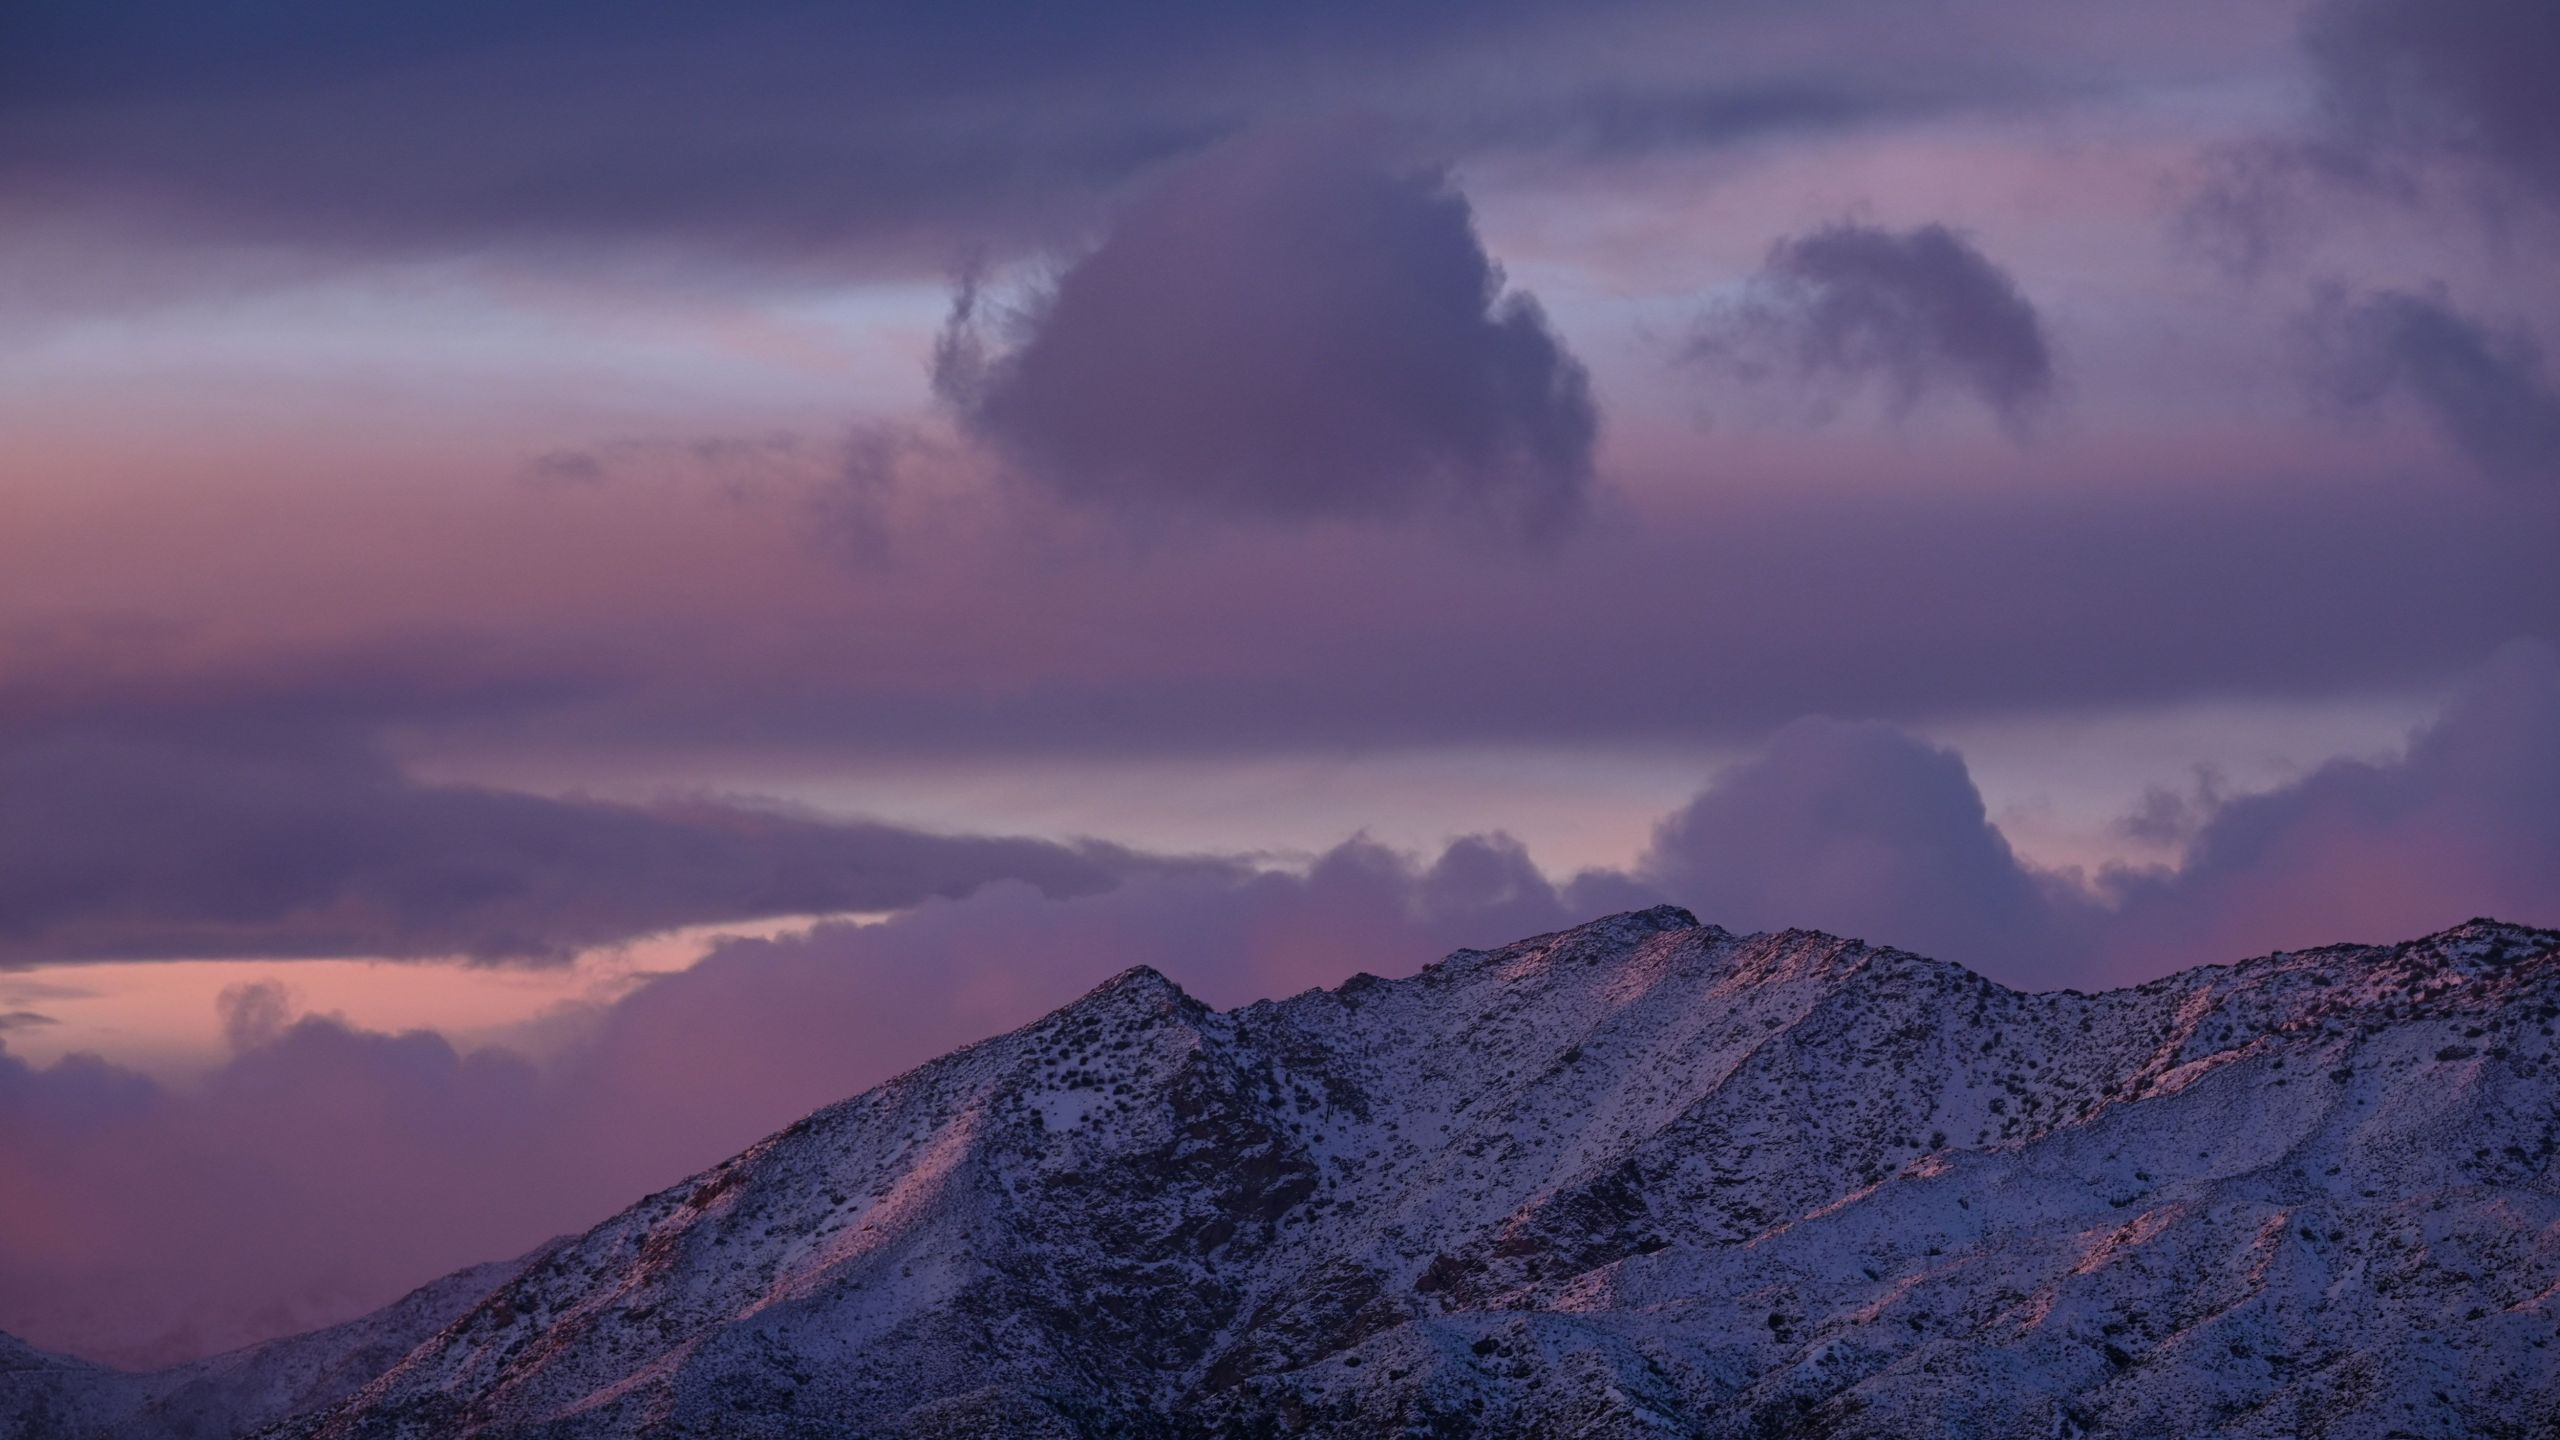 Snow blankets the Angeles National Forest north of Los Angeles on Dec. 26, 2019, after a cold winter storm brought heavy rain, snow and strong winds to much of southern California. (Robyn Beck / AFP / Getty mages)